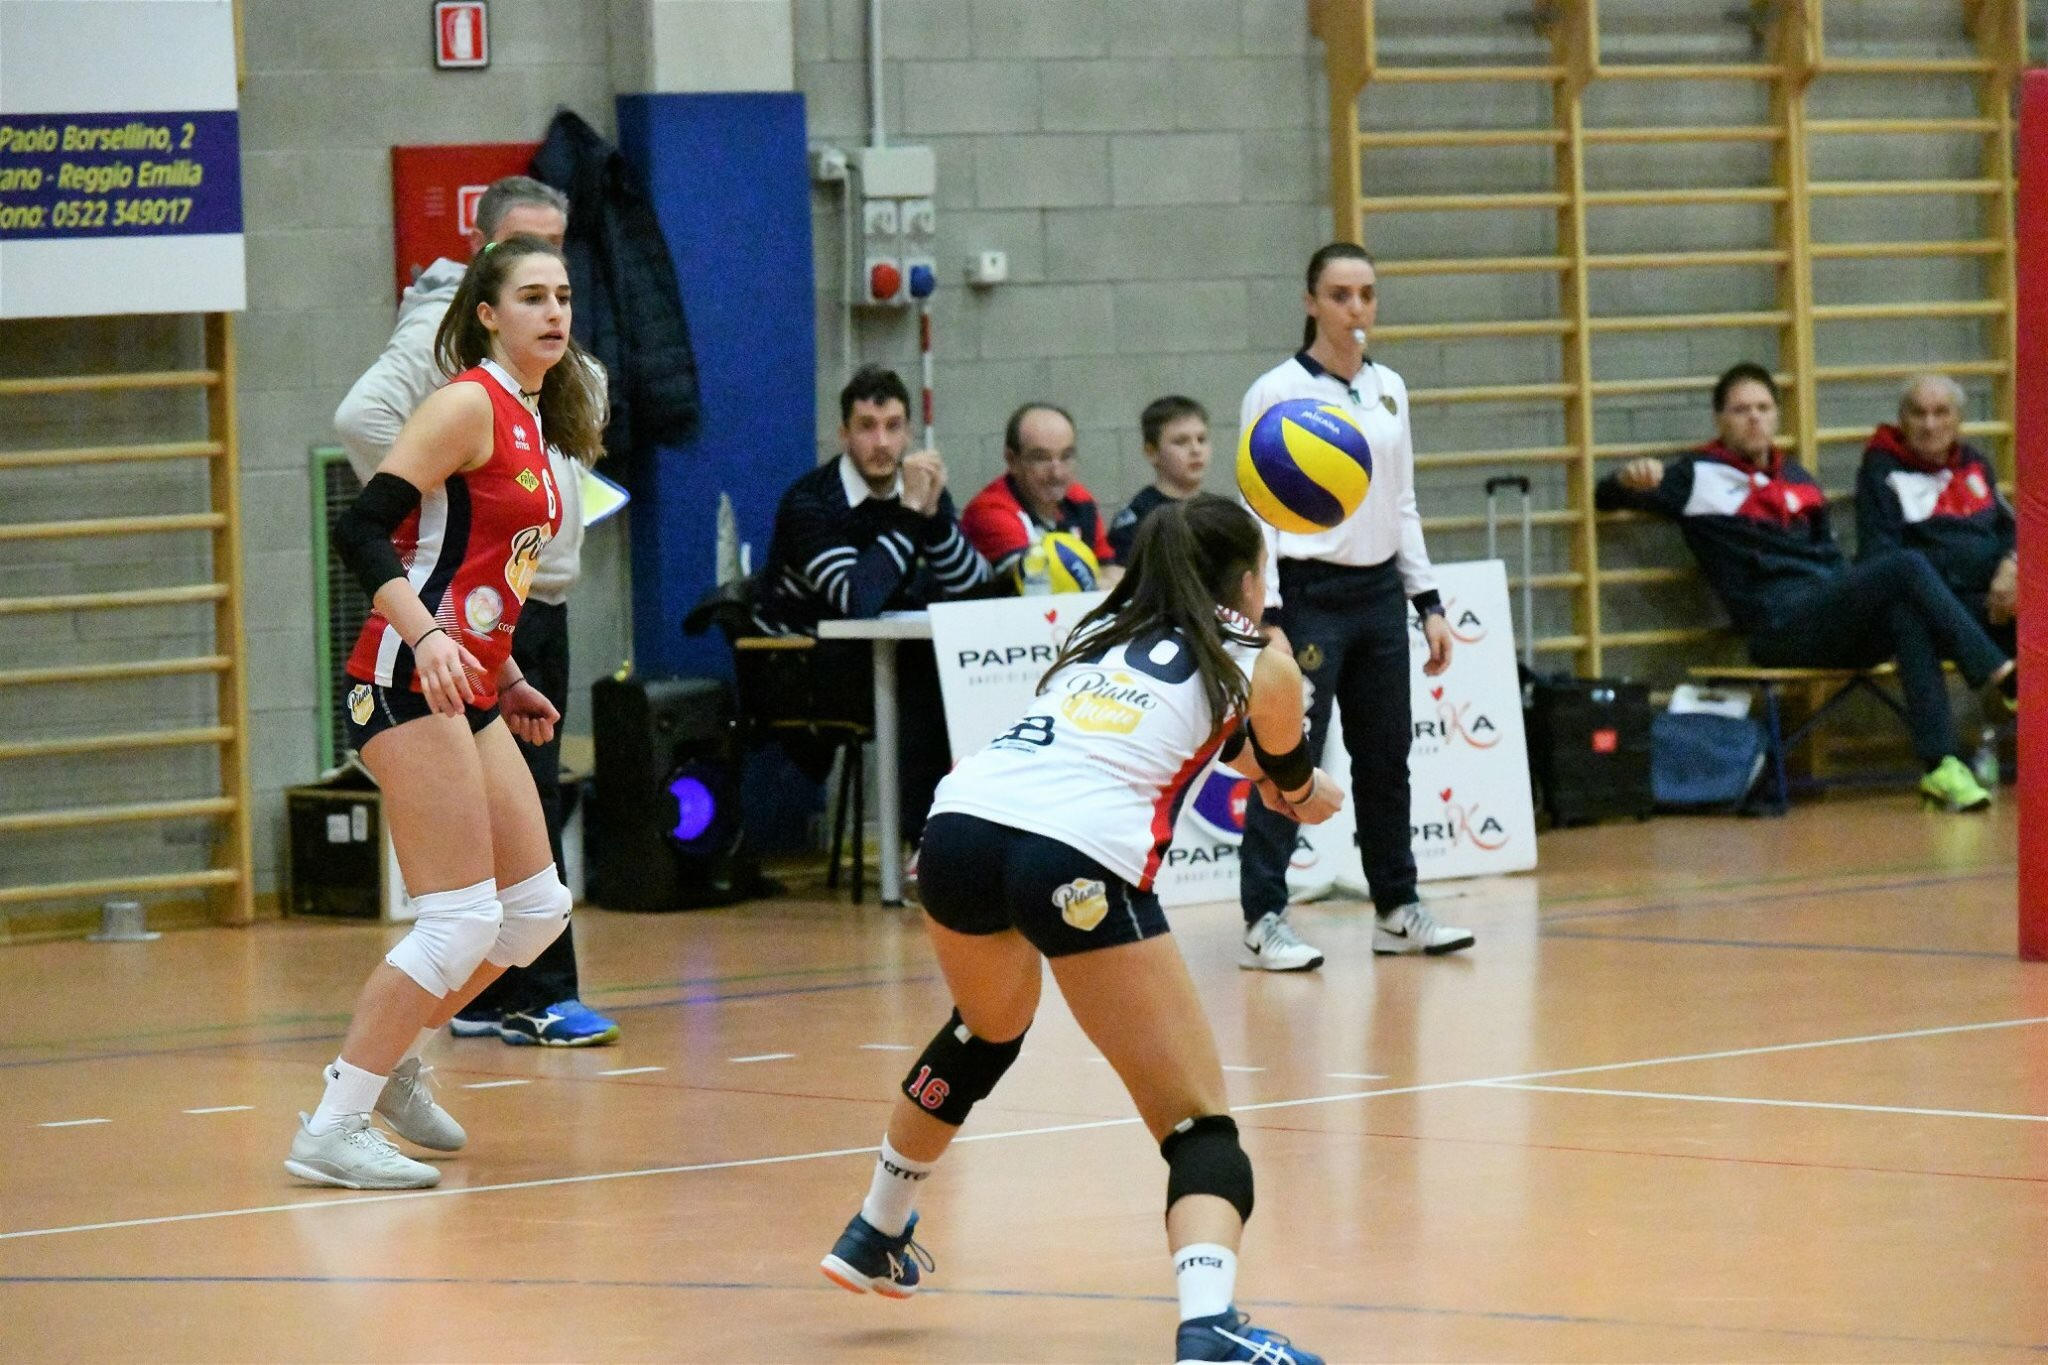 Serie B2 femm, quinto set vincente per il Volley Team